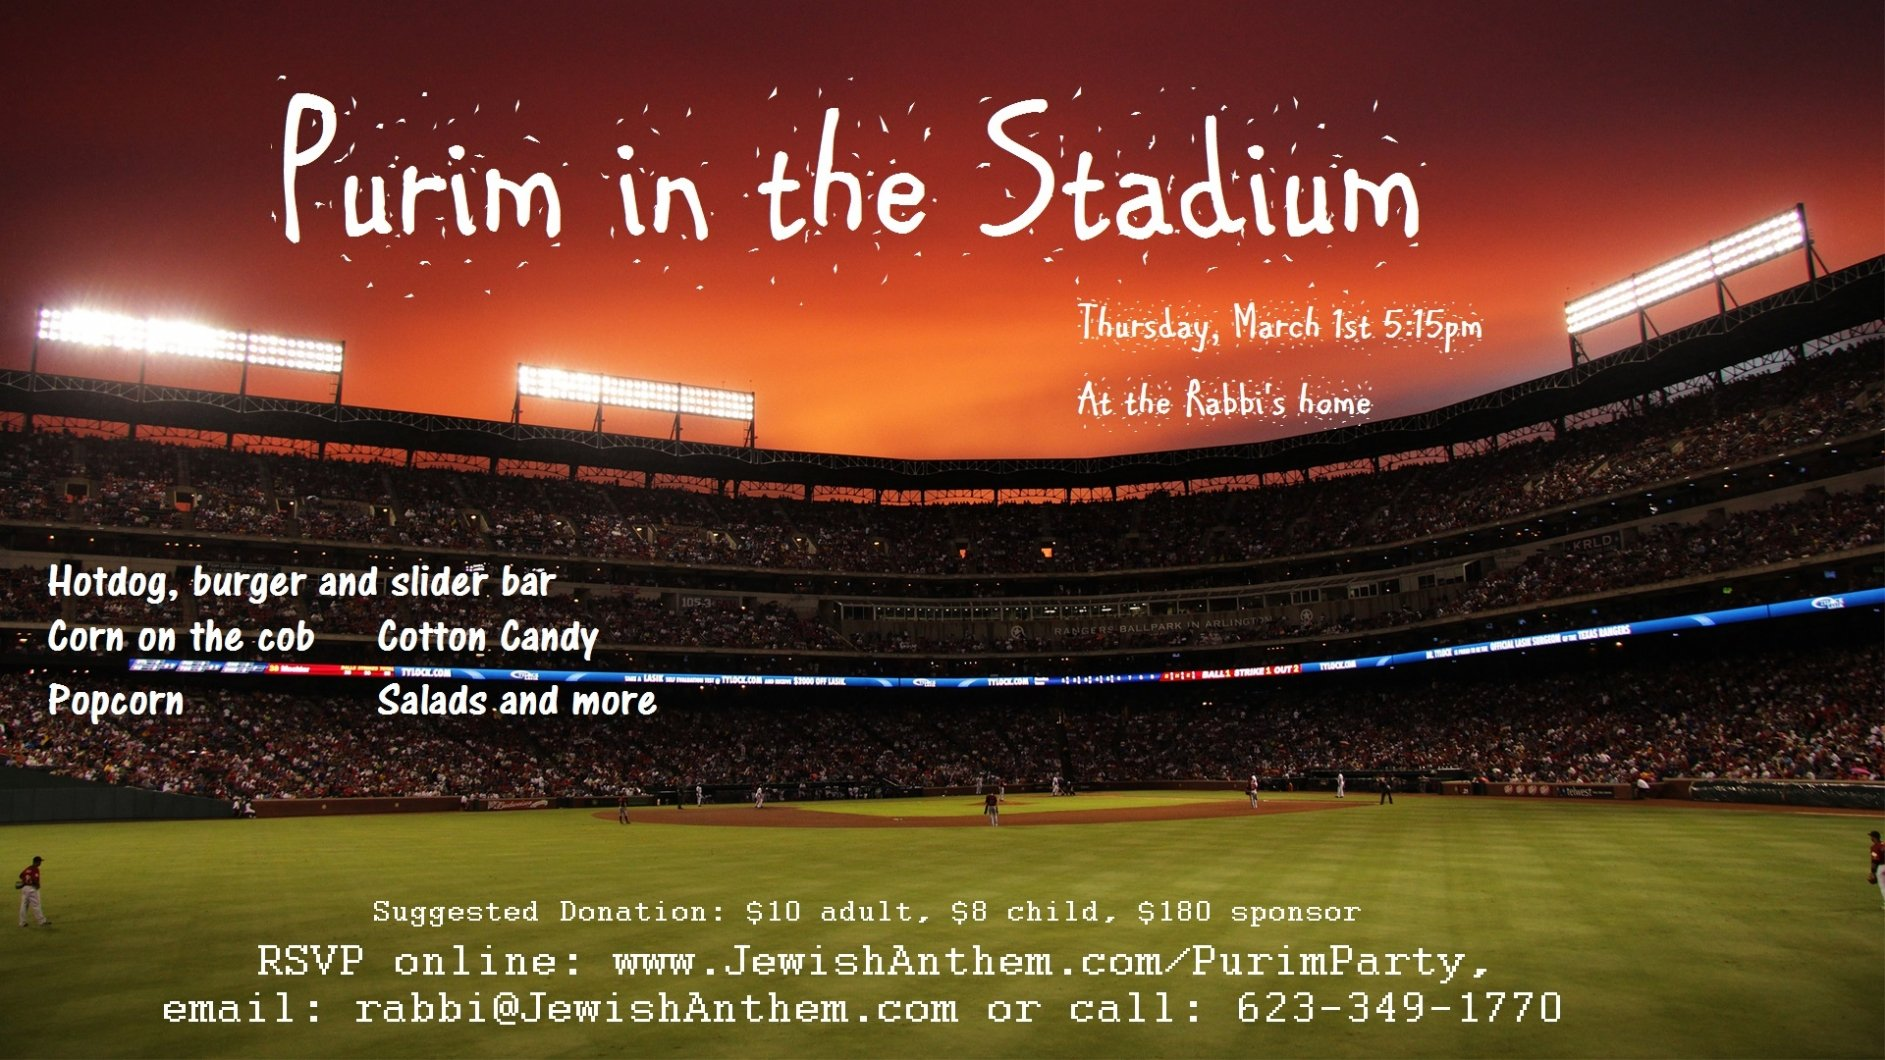 Purim-baseball-stadium2.jpg